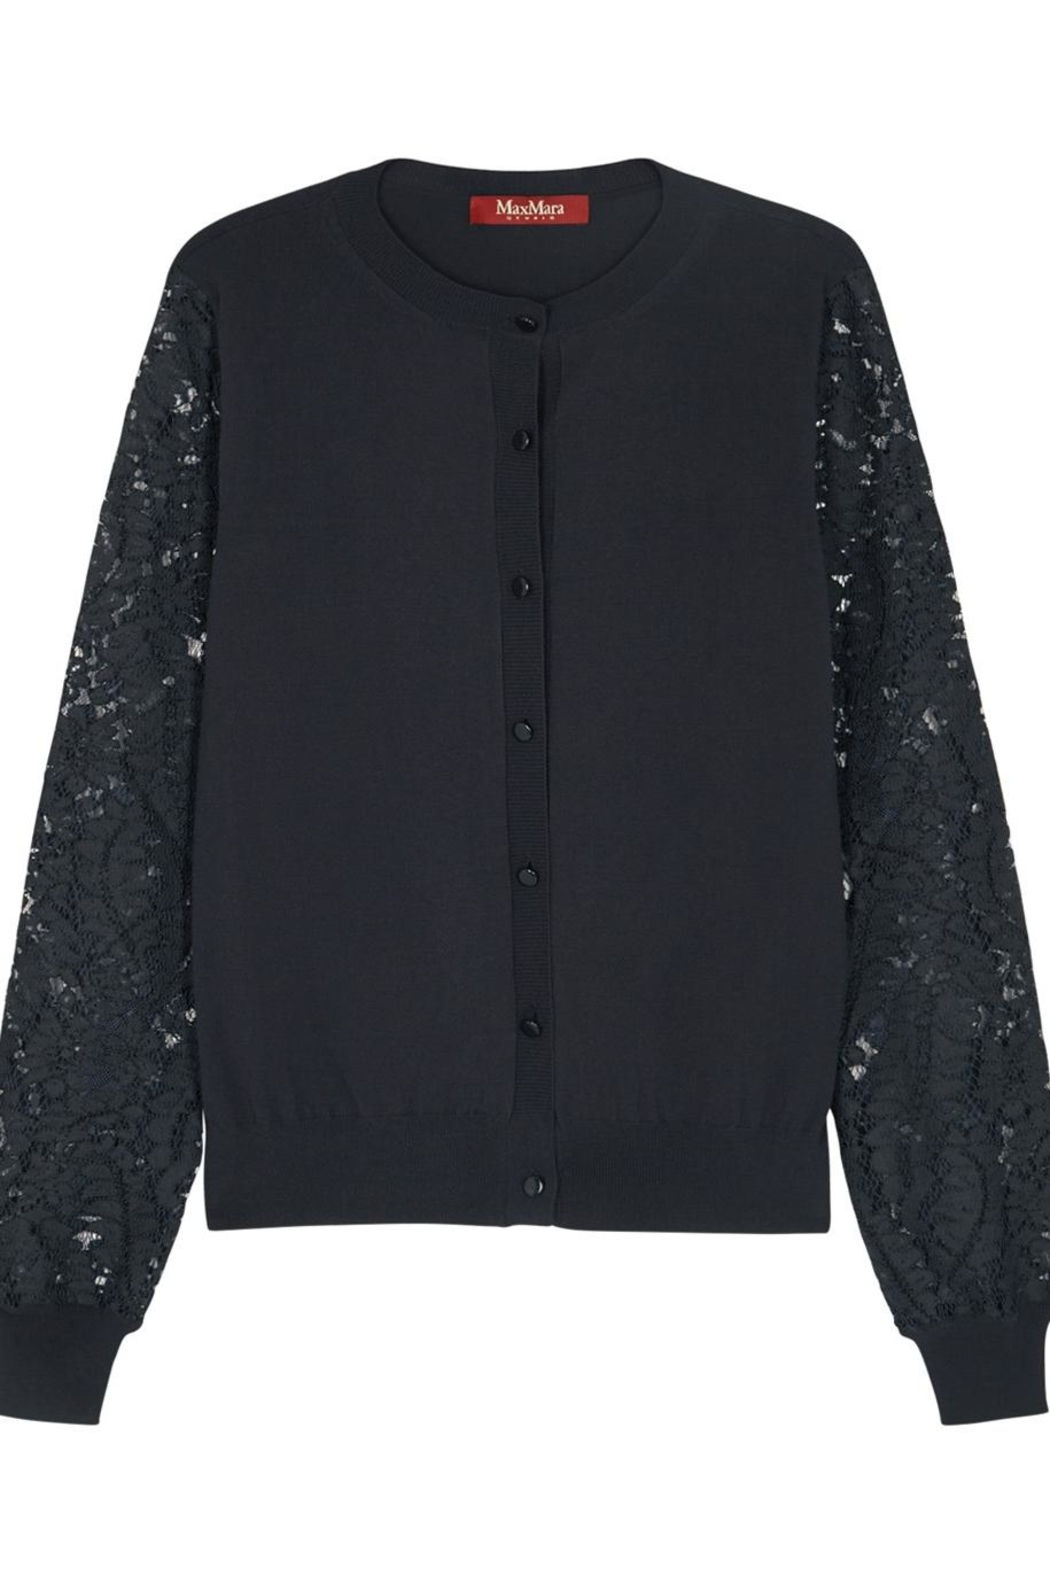 Max Mara Lace- Sleeved Cardigan - Side Cropped Image